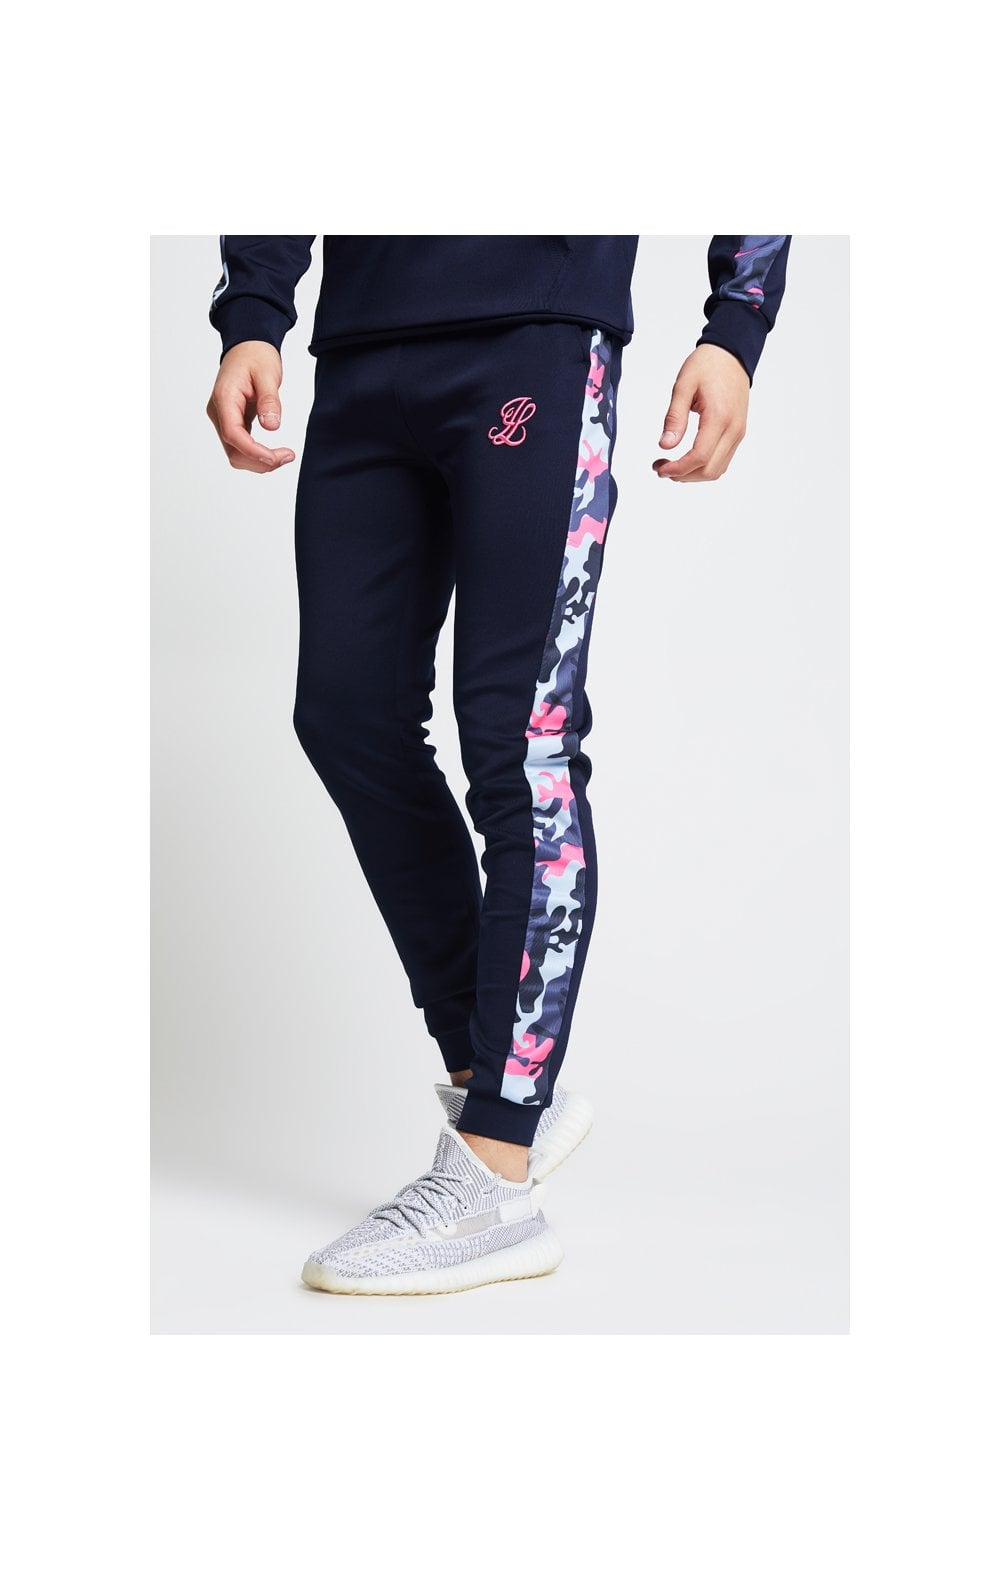 Illusive London Fade Panel Cuffed Joggers – Navy & Neon Pink Camo